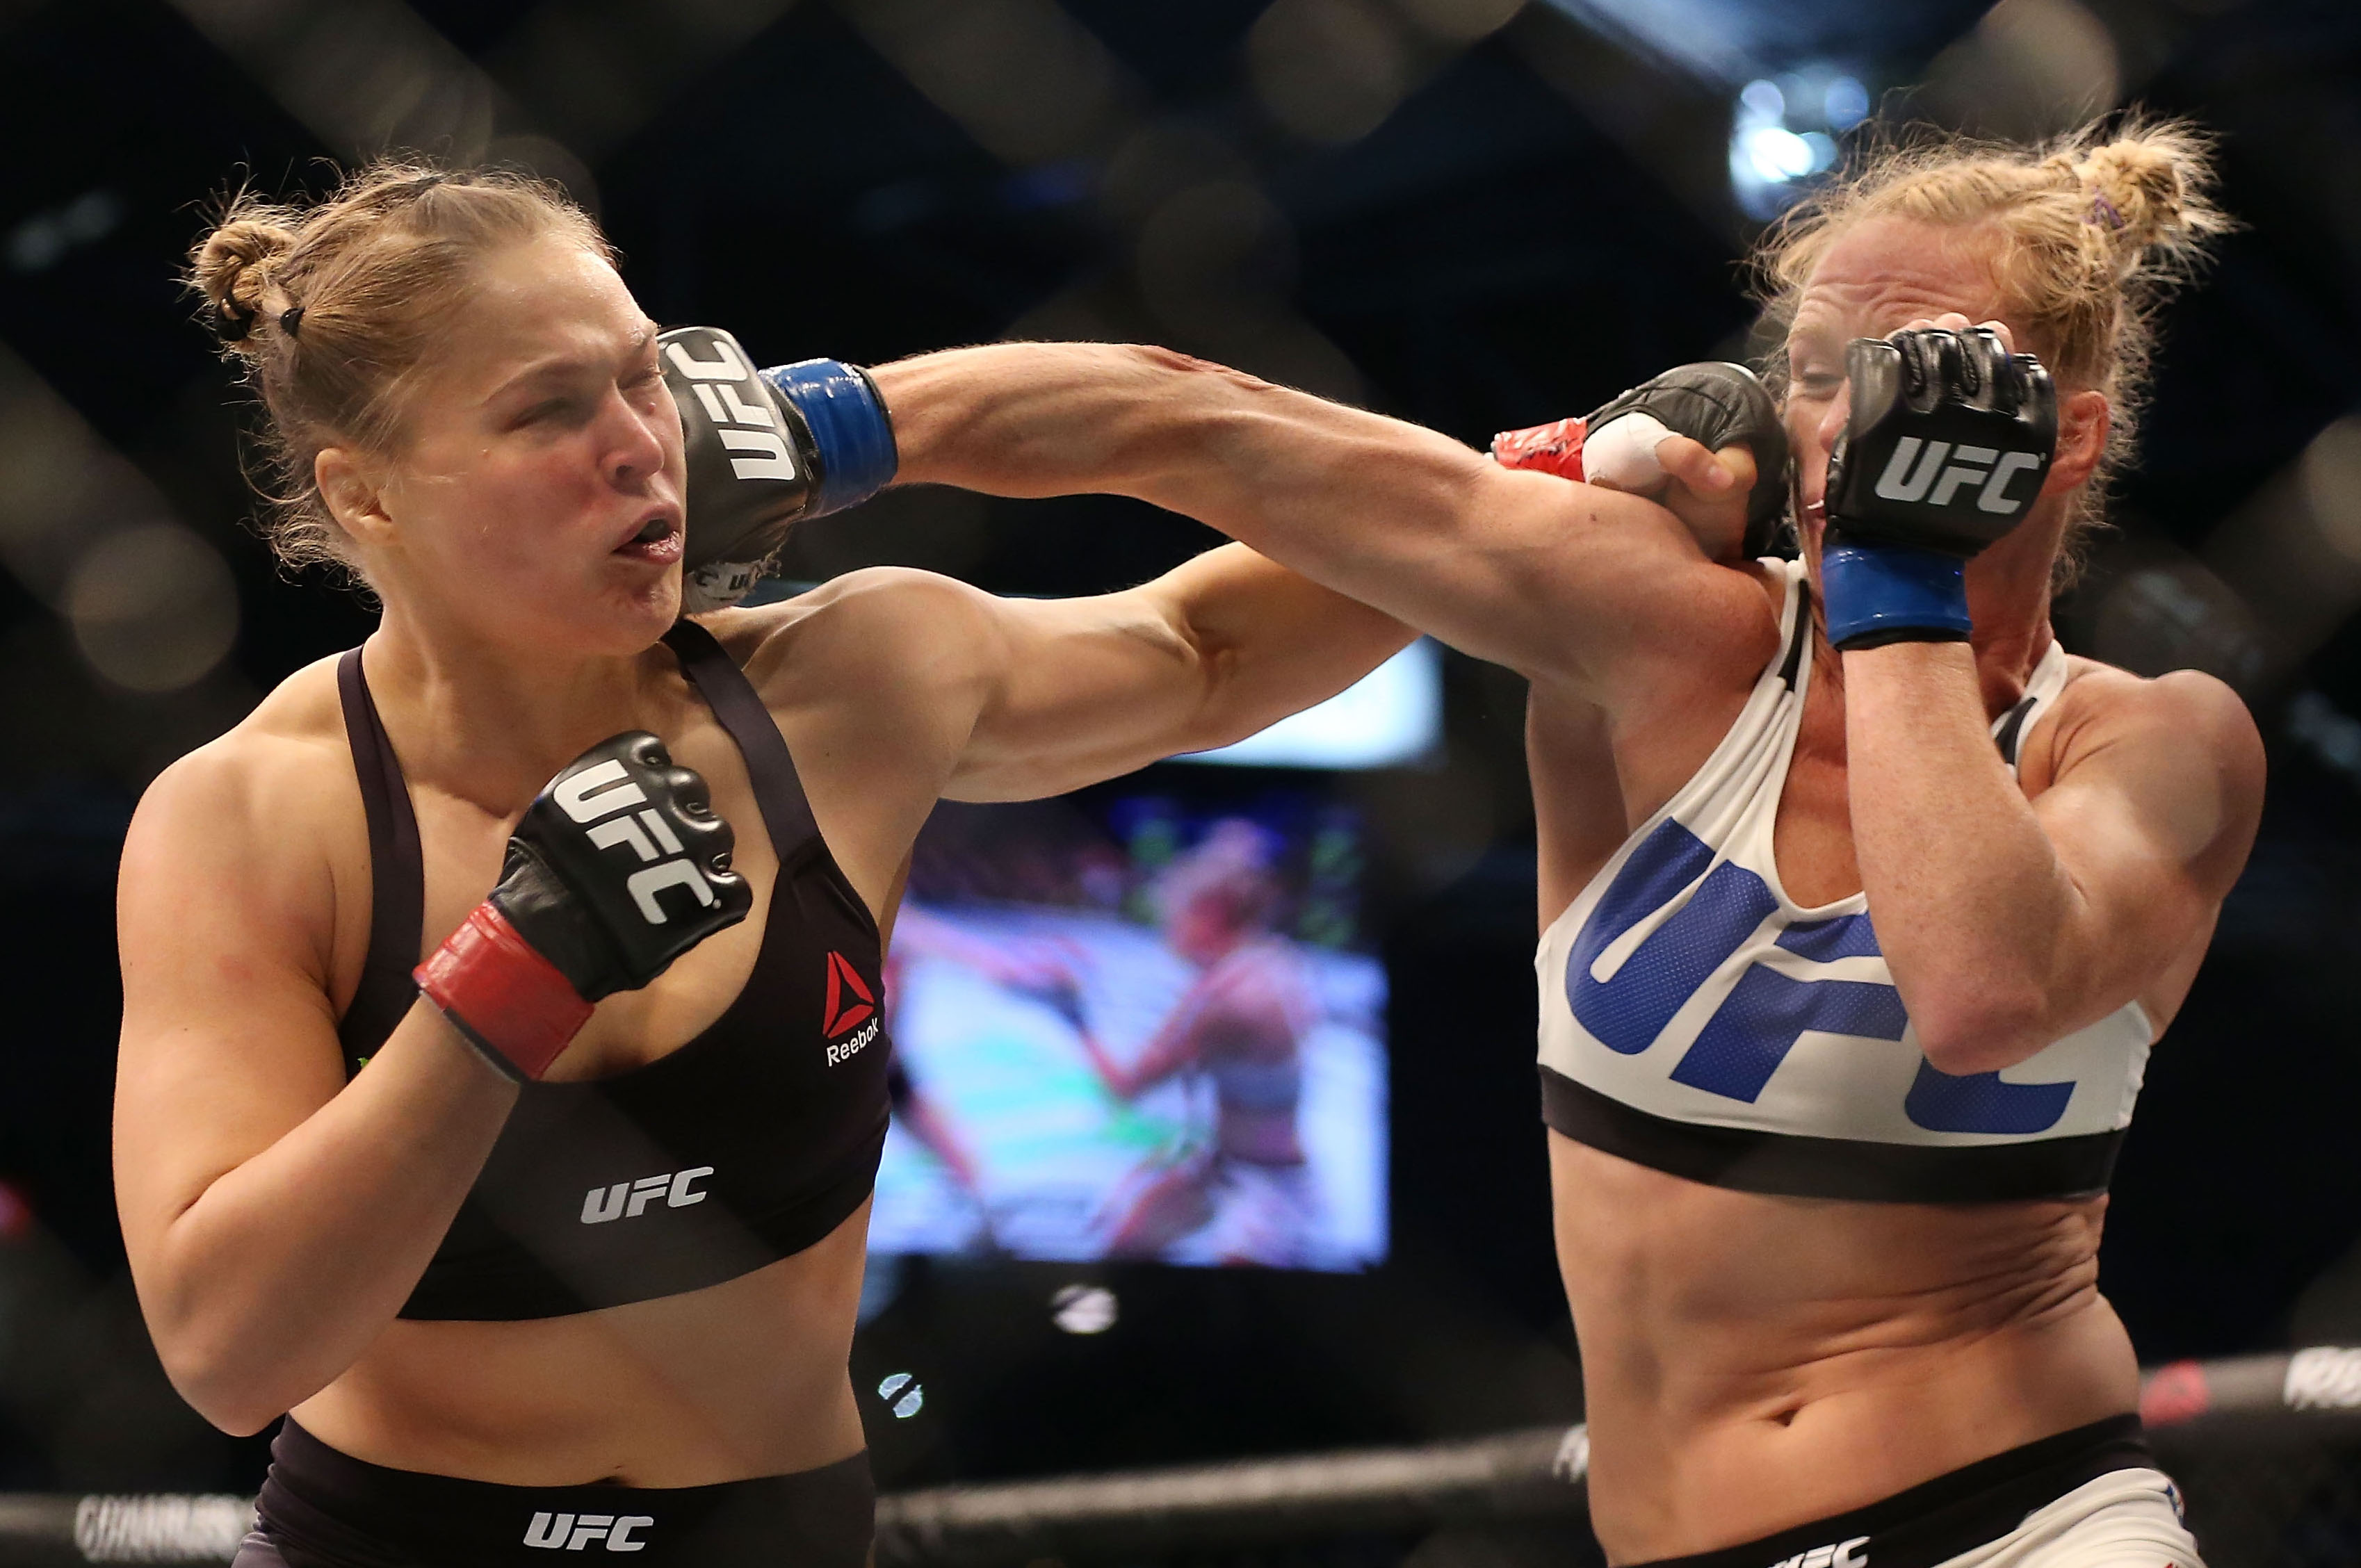 ronda rousey breaks her silence after shocking ufc loss to holly